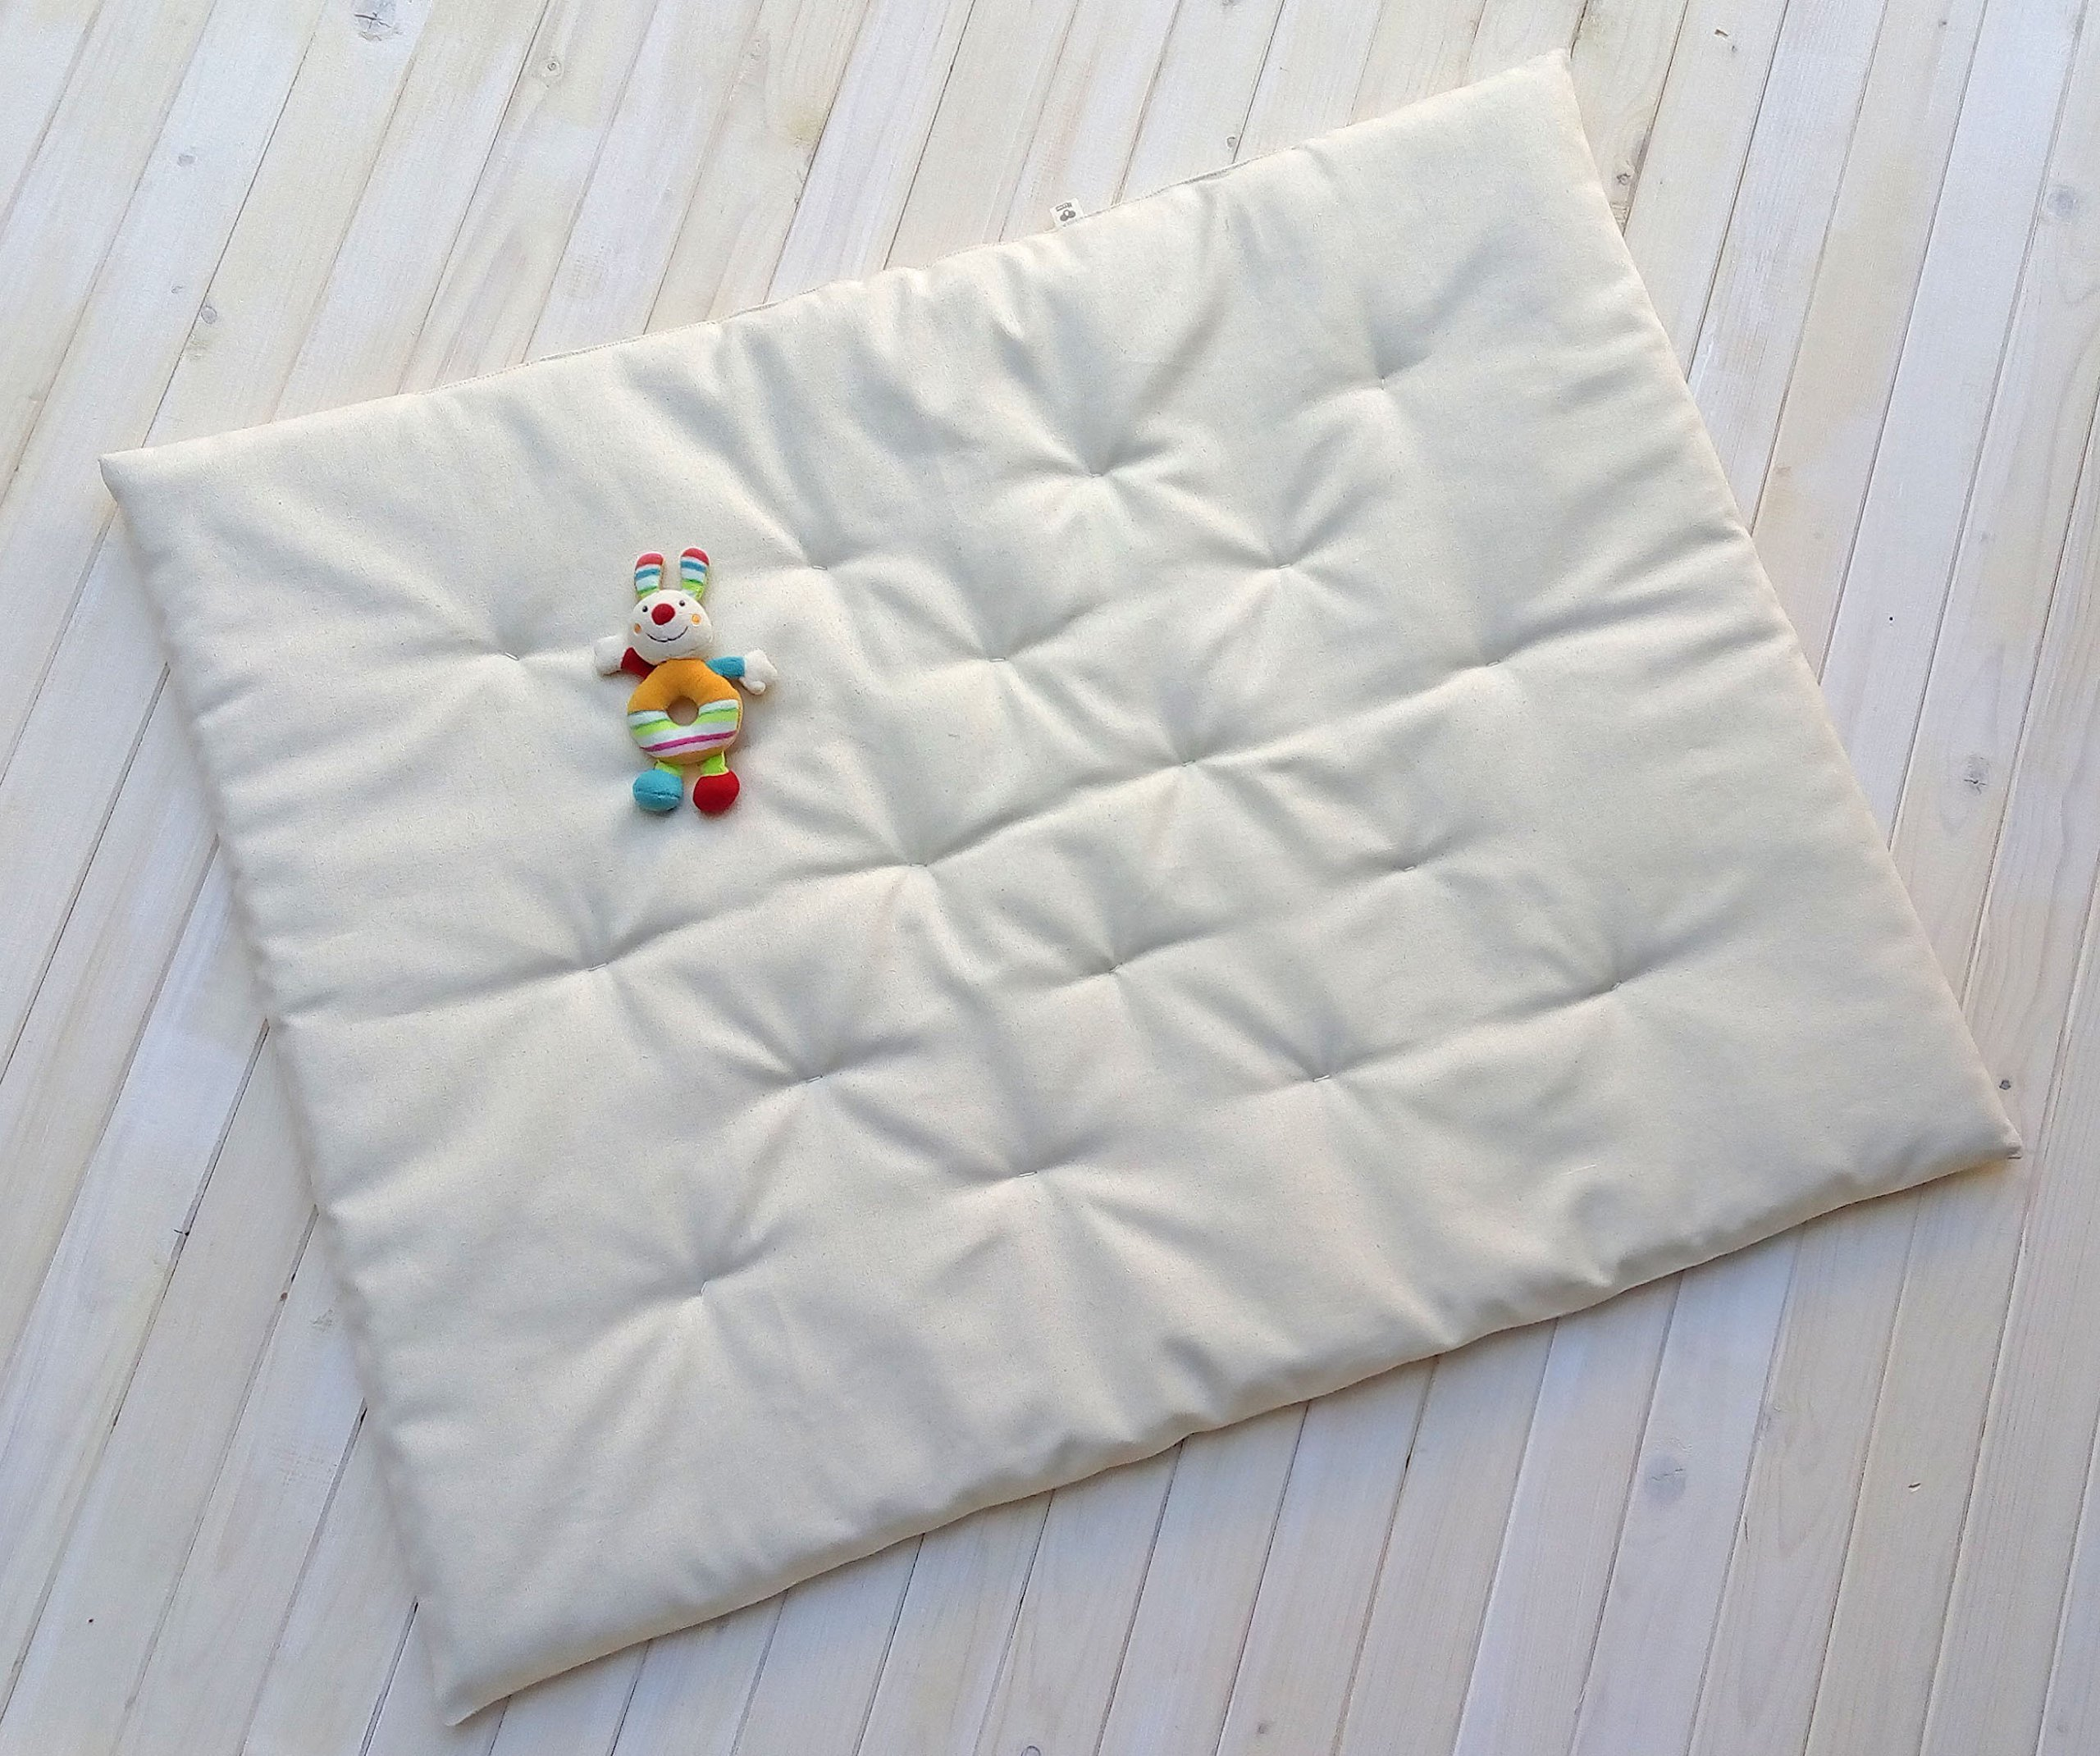 Home of Wool/Wool Mat Only or Wool Mat + Protector/Chemical-free/Cotton or Lambswool Cover/Non - Toxic/Natural Color/Custom Sizes & Shapes & Fabrics Available/Made - to - Order by Home Of Wool